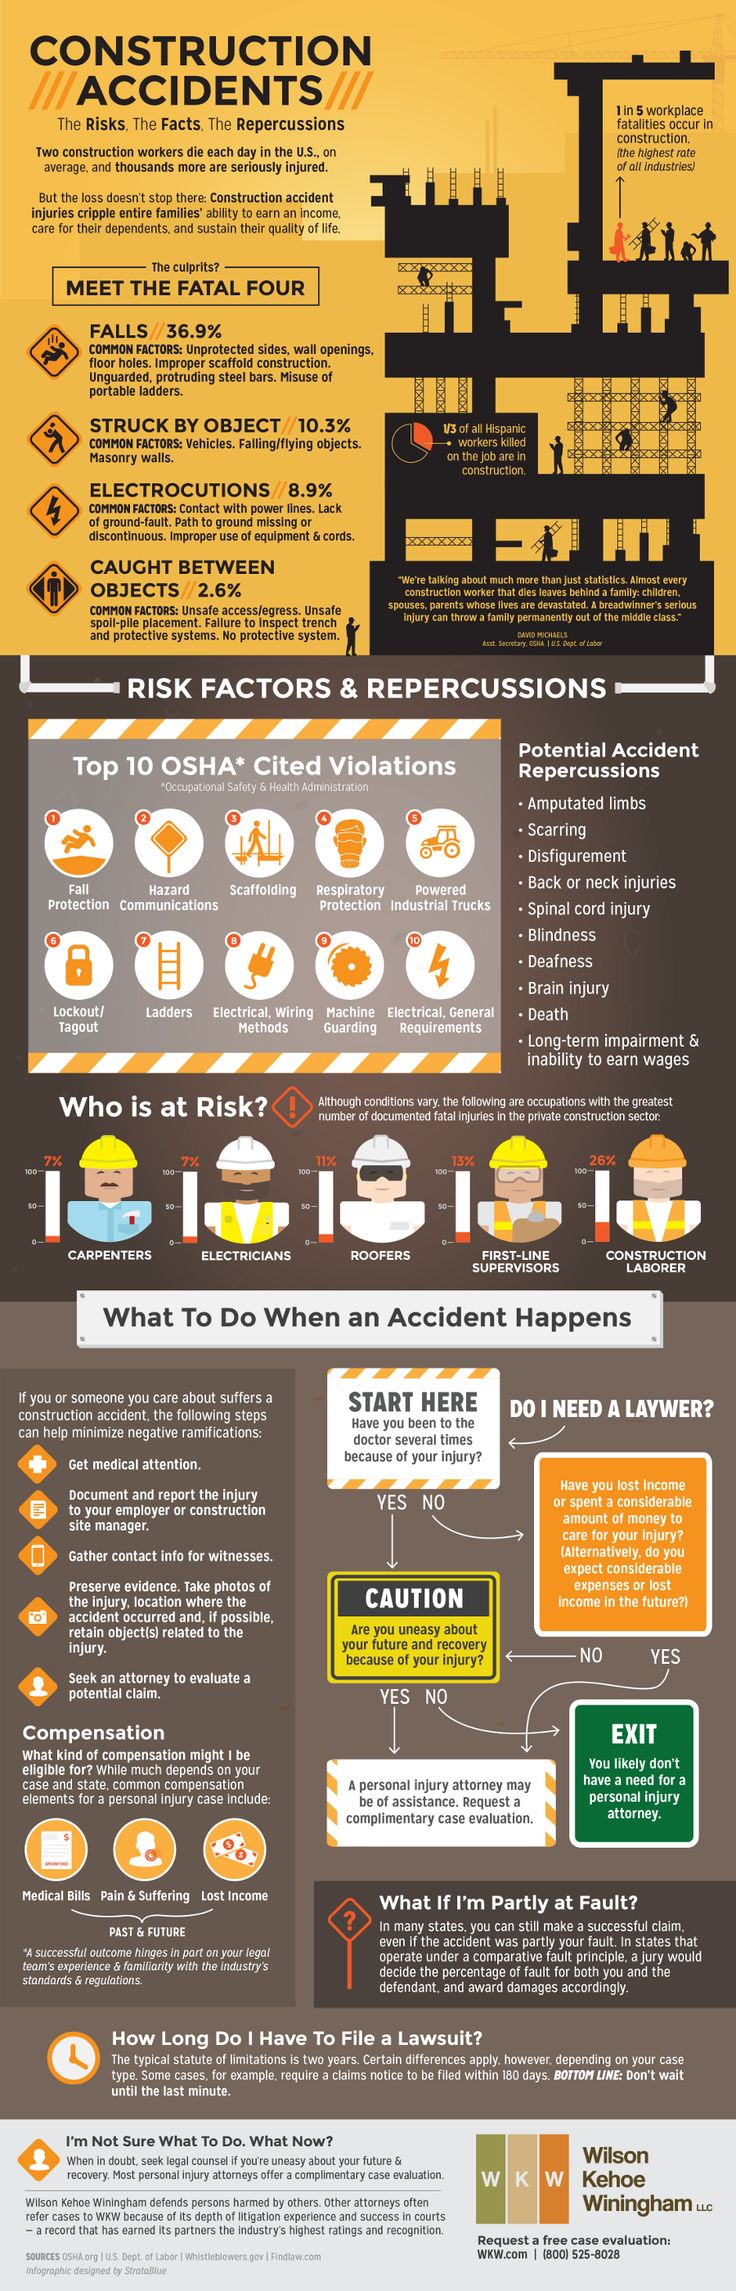 Construction Accidents: The Risks, the Facts, the Repercussions – An Infographic from Wilson Kehoe Winingham